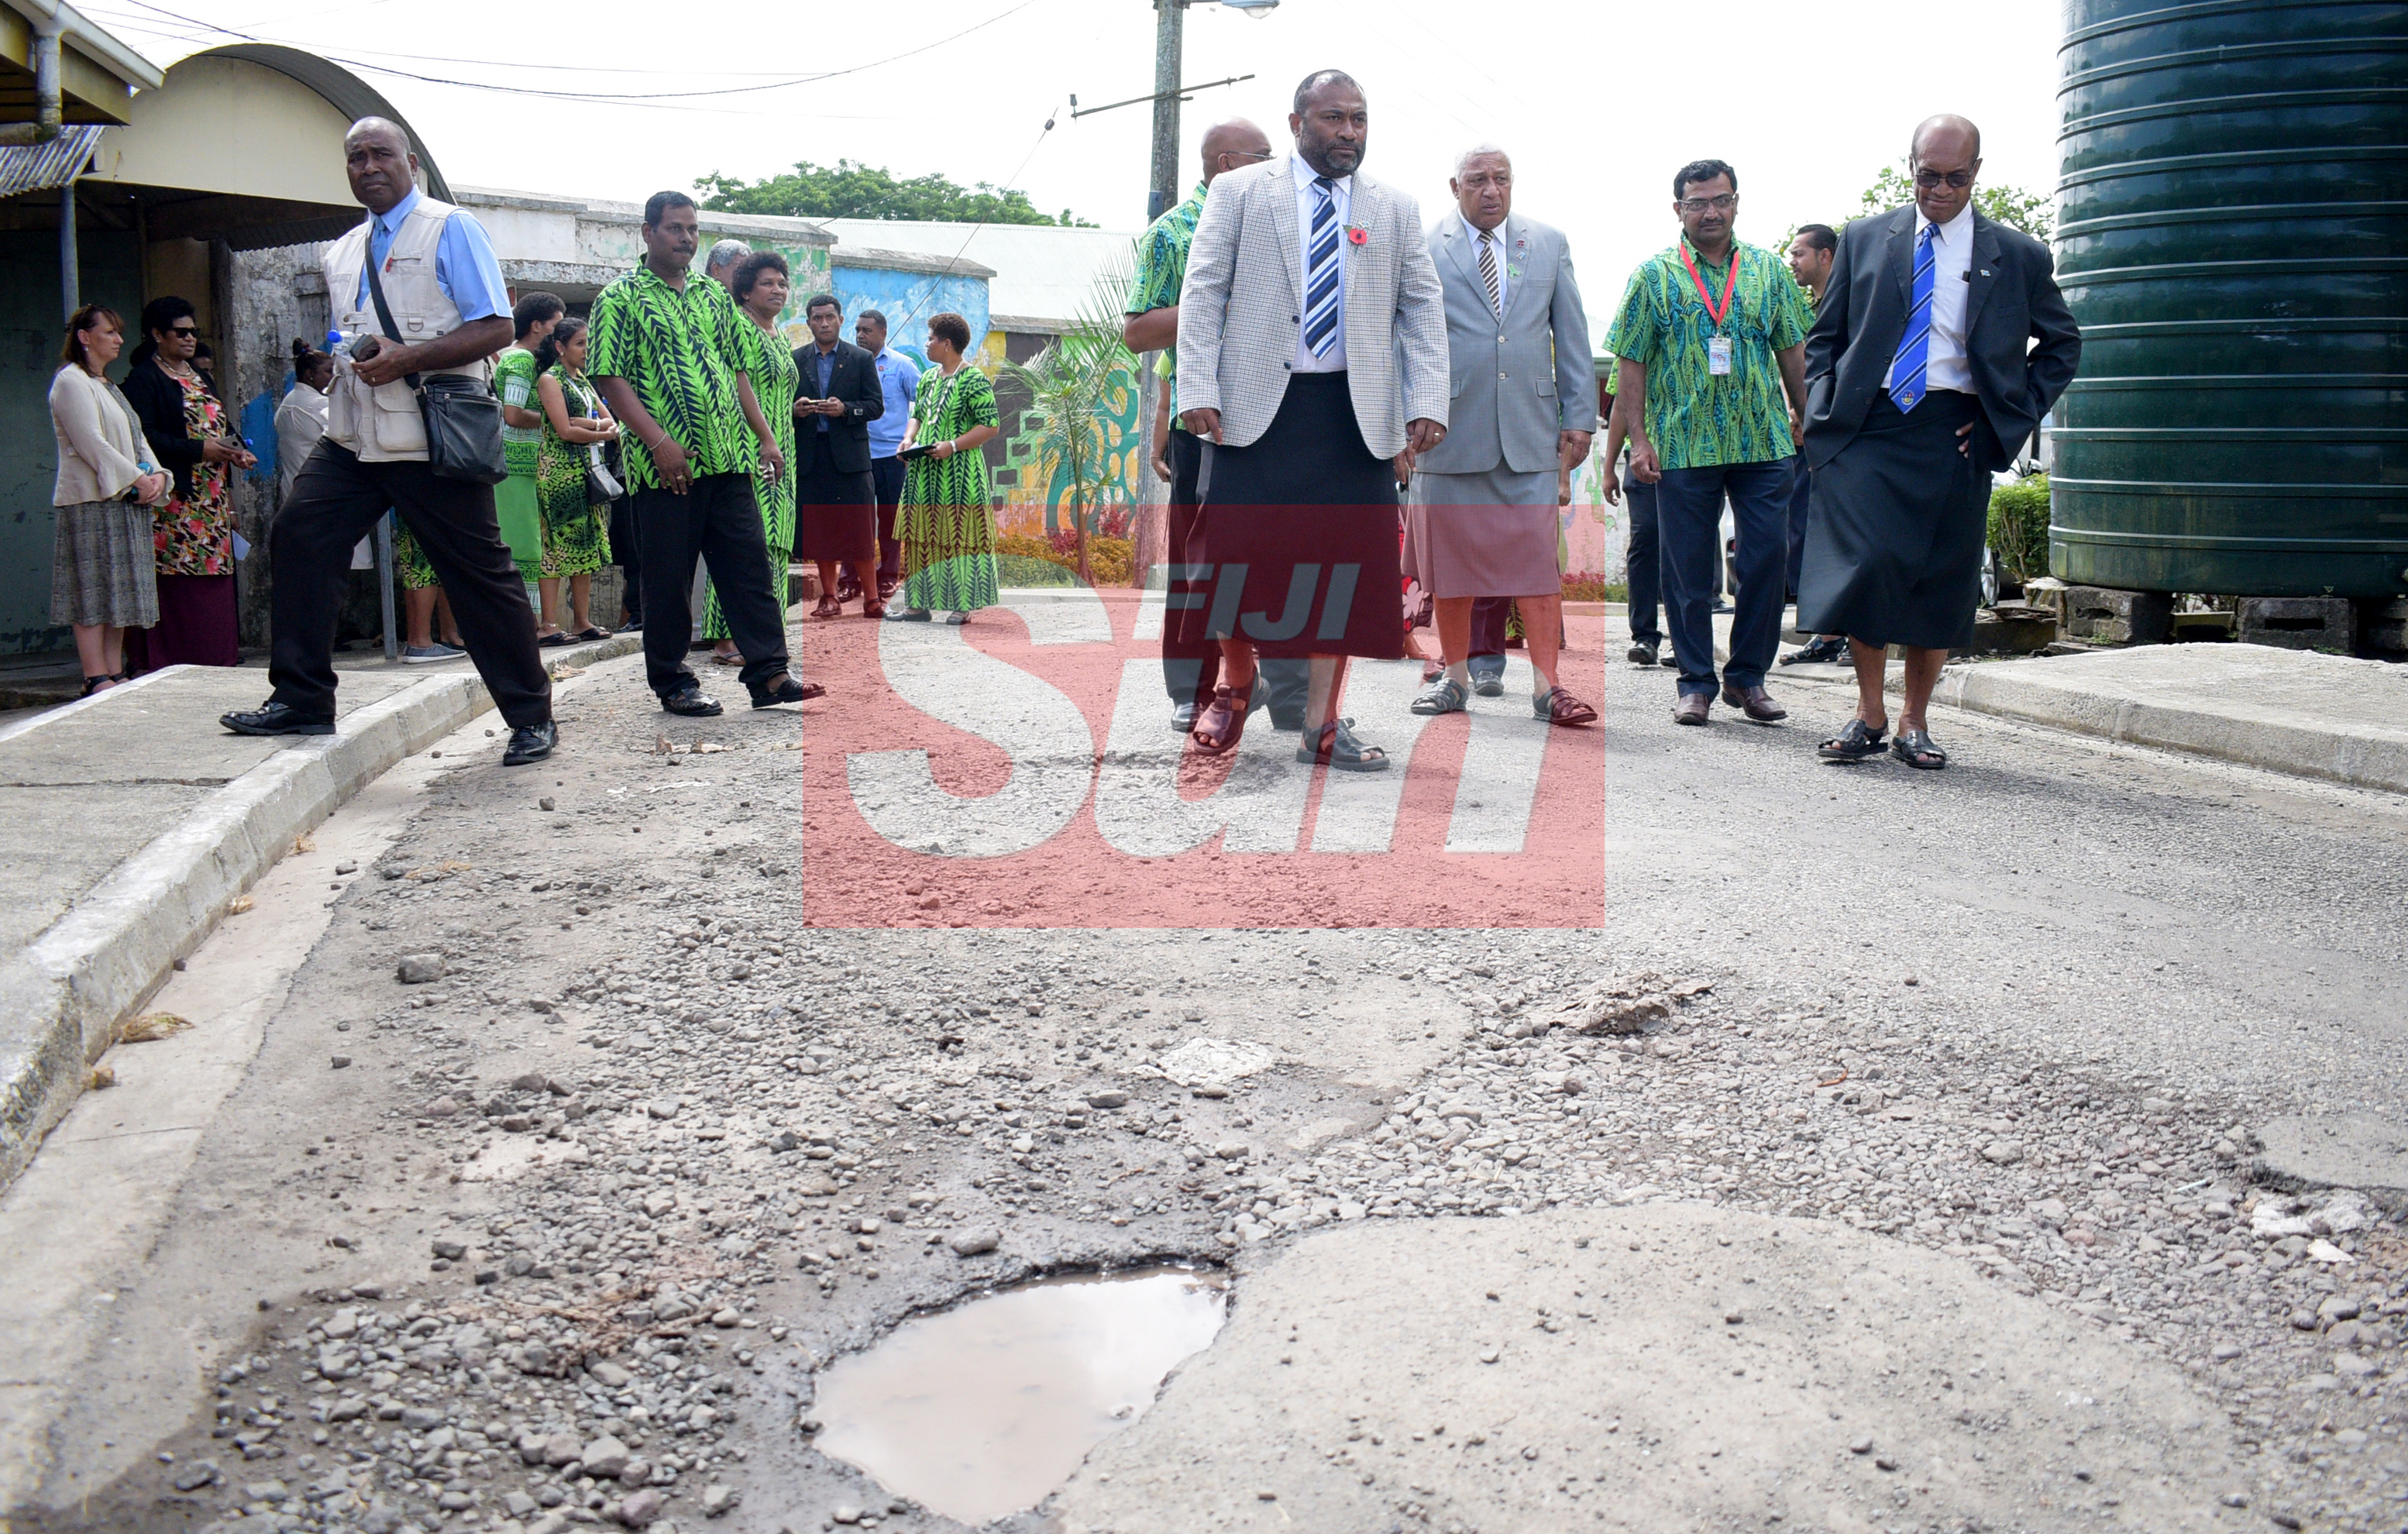 From left-Minister for Health Dr. Iferemi Waqainabete, Prime Minister Voreqe Bainimarama, Dr. Kiran Gaikwat and Minister for Infrastructure and Transport Jone Usamate after opening the Alcohol and Drug unit (AOD Unit) at the hospital on November 6, 2019. Photo: Ronald Kumar.